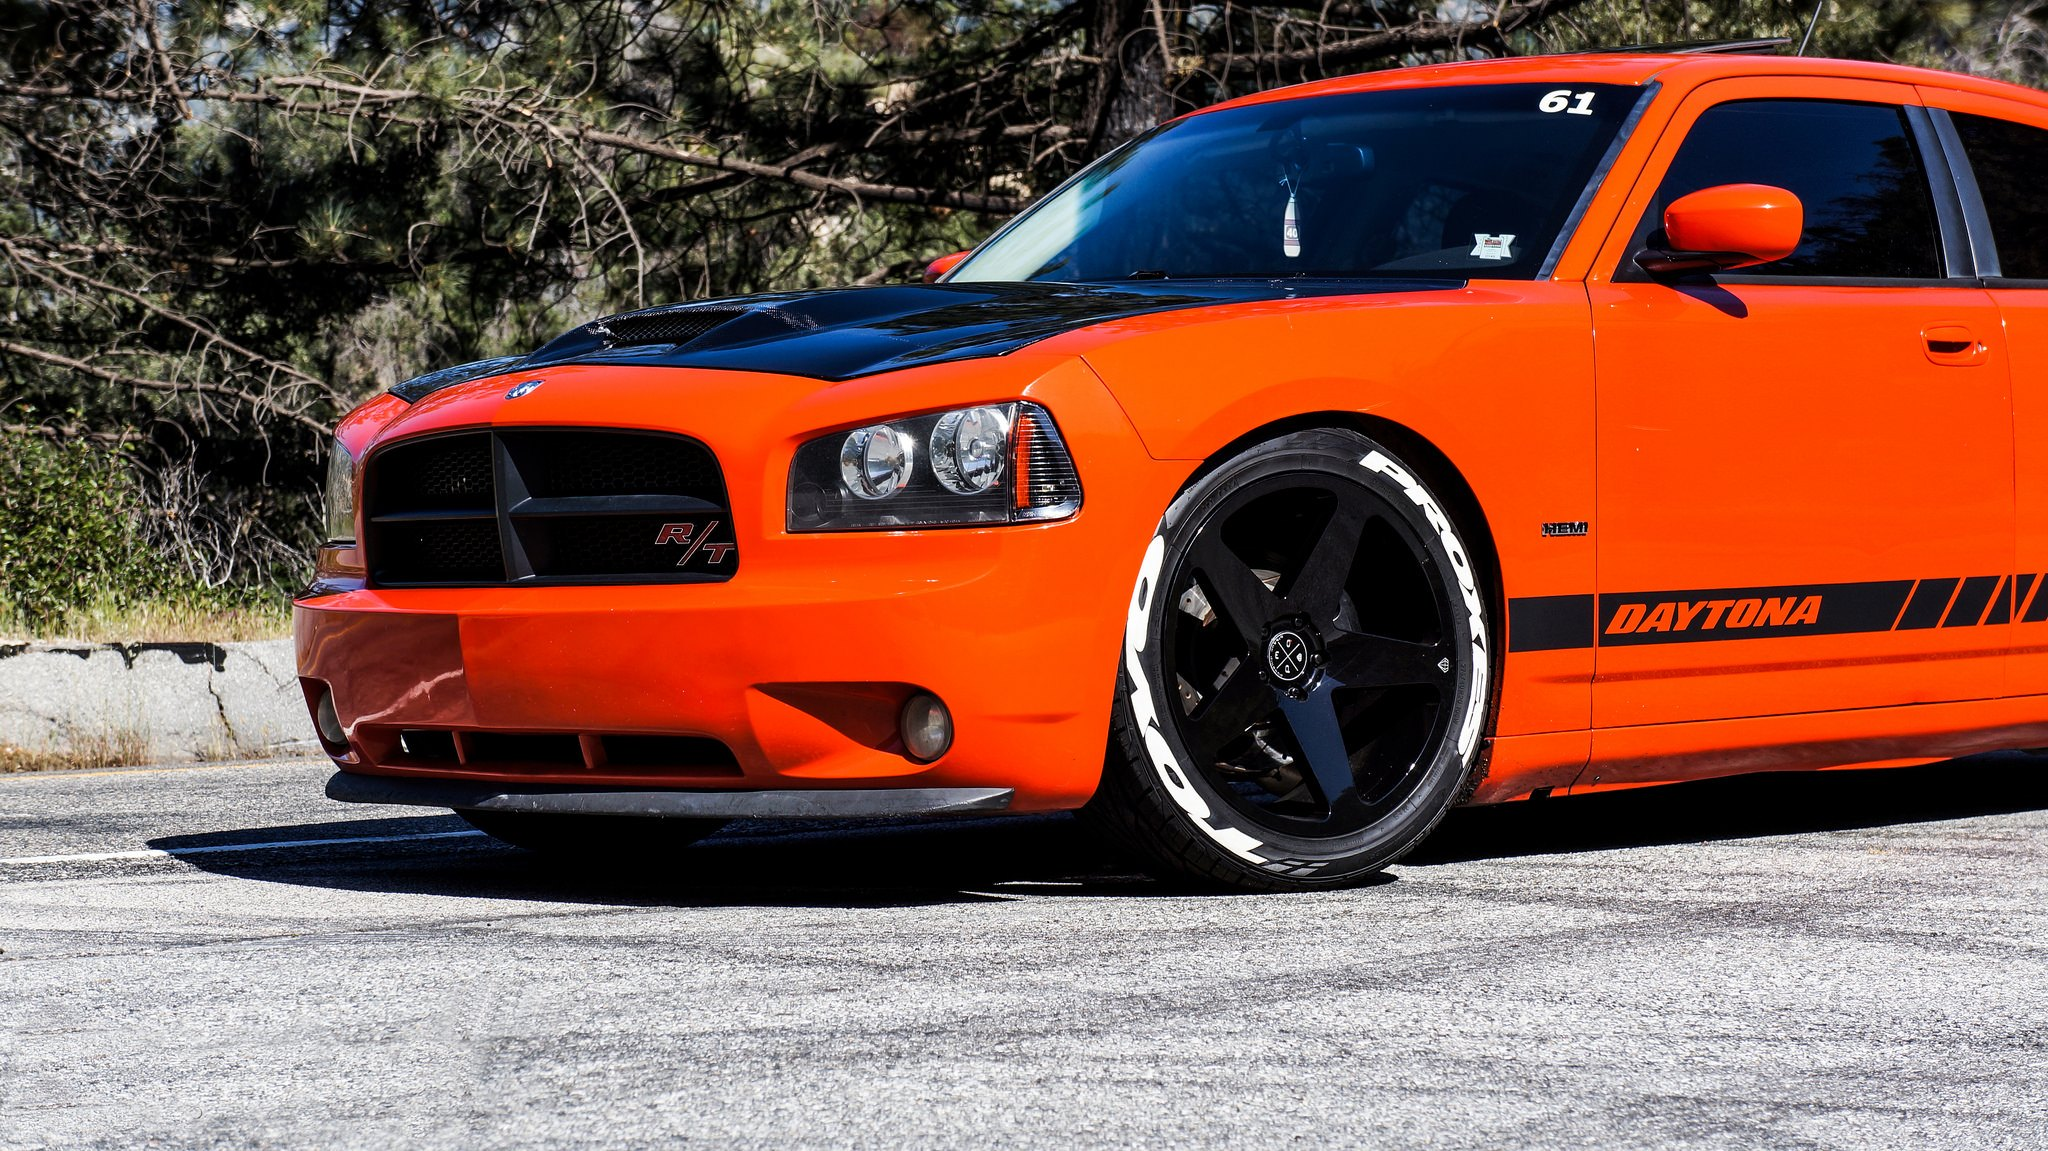 Bright Orange Dodge Charger With Contrasting Black Accents Carid Com Gallery